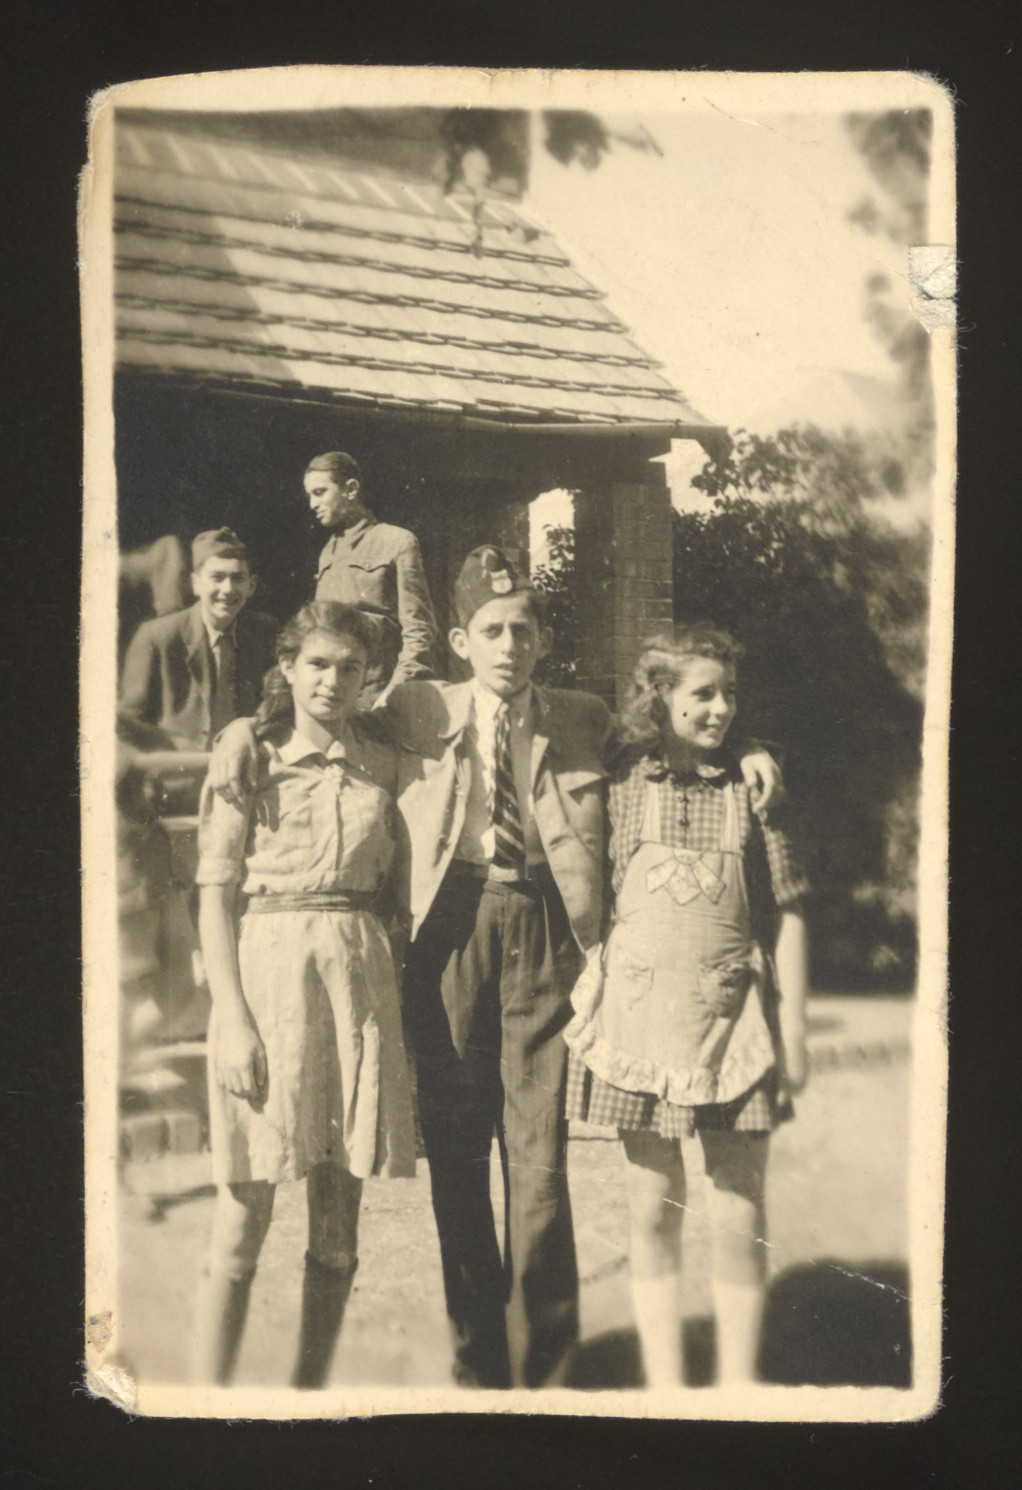 Three Jewish children pose outside a wooden building in Slovakia after liberation.  Pictured are Henia and Arthur Spielman and their cousin Miriam.